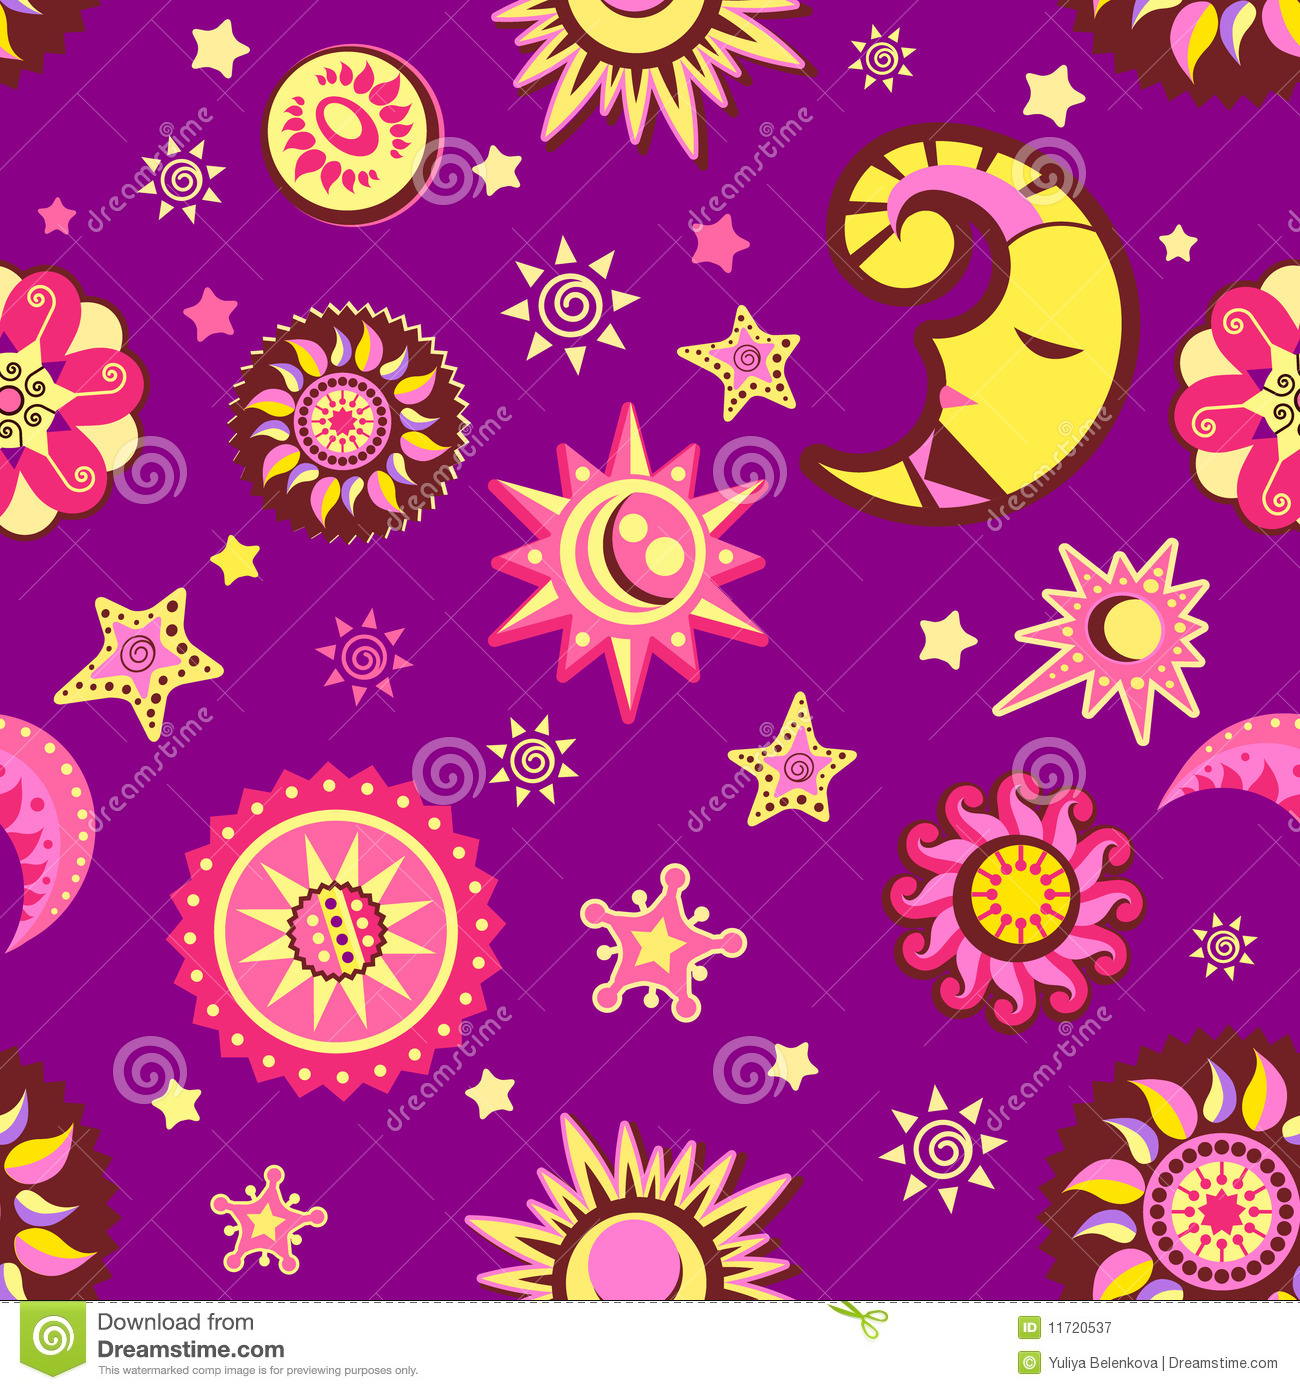 Star And Moon Seamless Pattern Royalty Free Stock